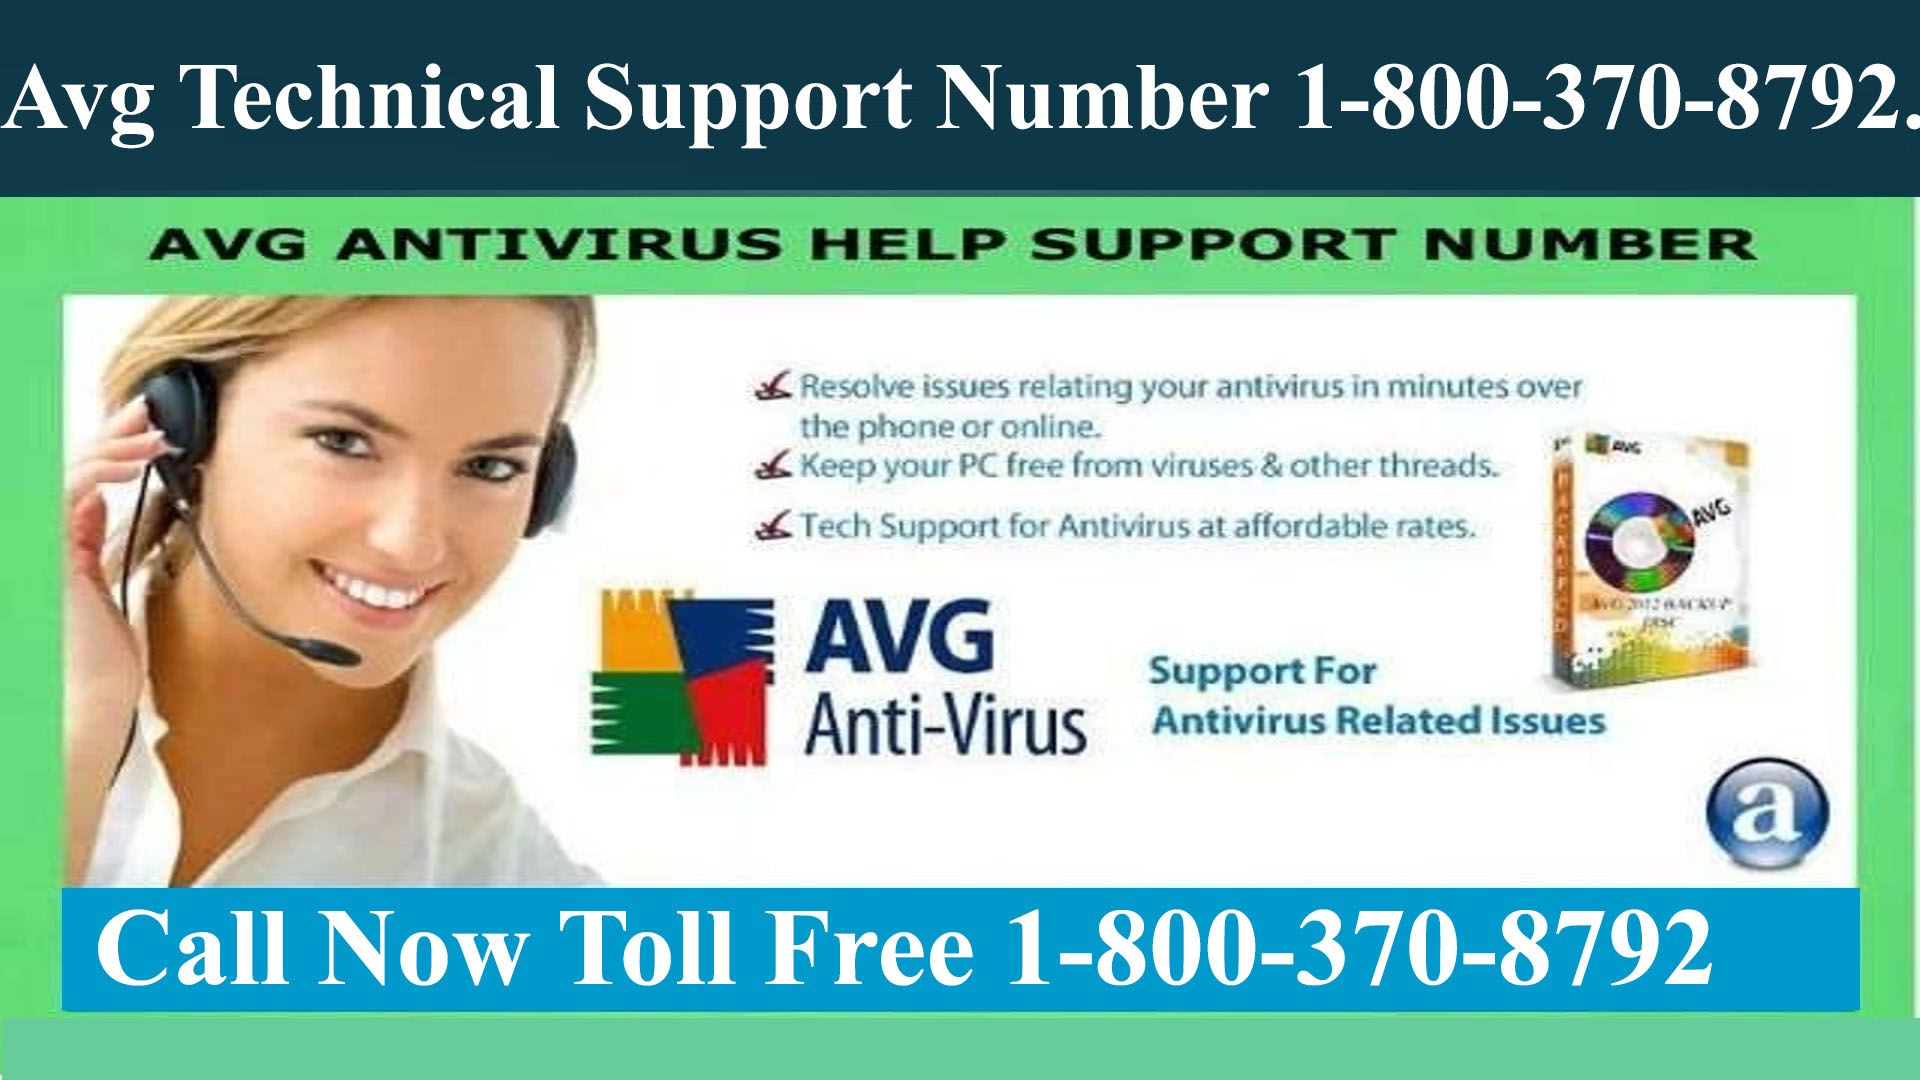 Https Www Supertechoncall Com Blog Avg Technical Support Number 1 800 370 8792 Internet Security Web Security Tech Support